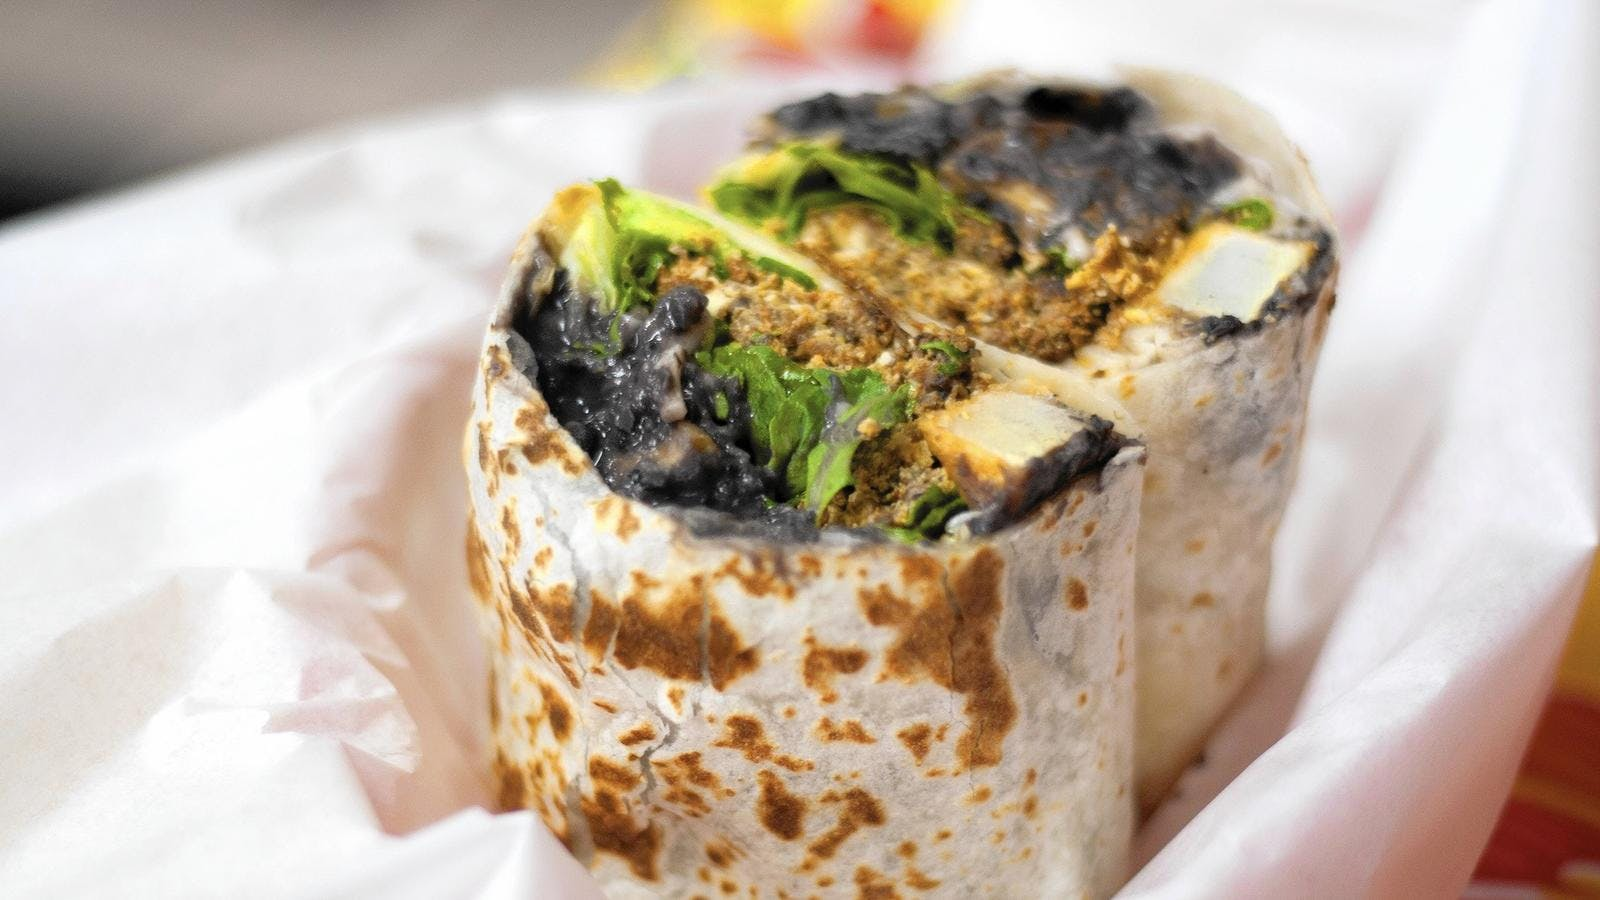 a close up of a burrito